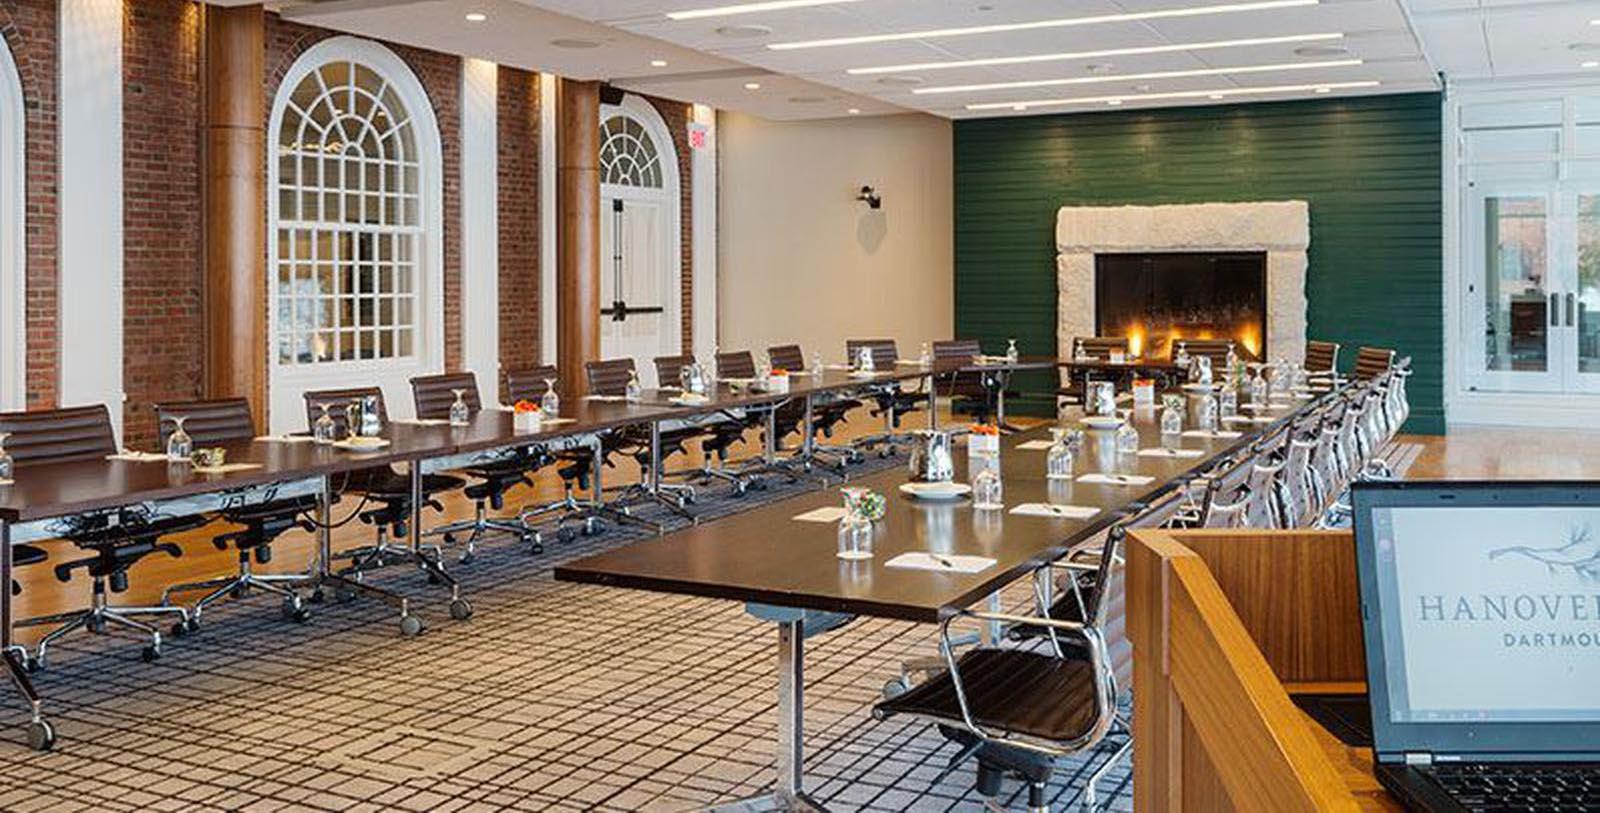 Image of meeting room set up Hanover Inn Dartmouth, 1780, Member of Historic Hotels of America, in Hanover, New Hampshire, Experience